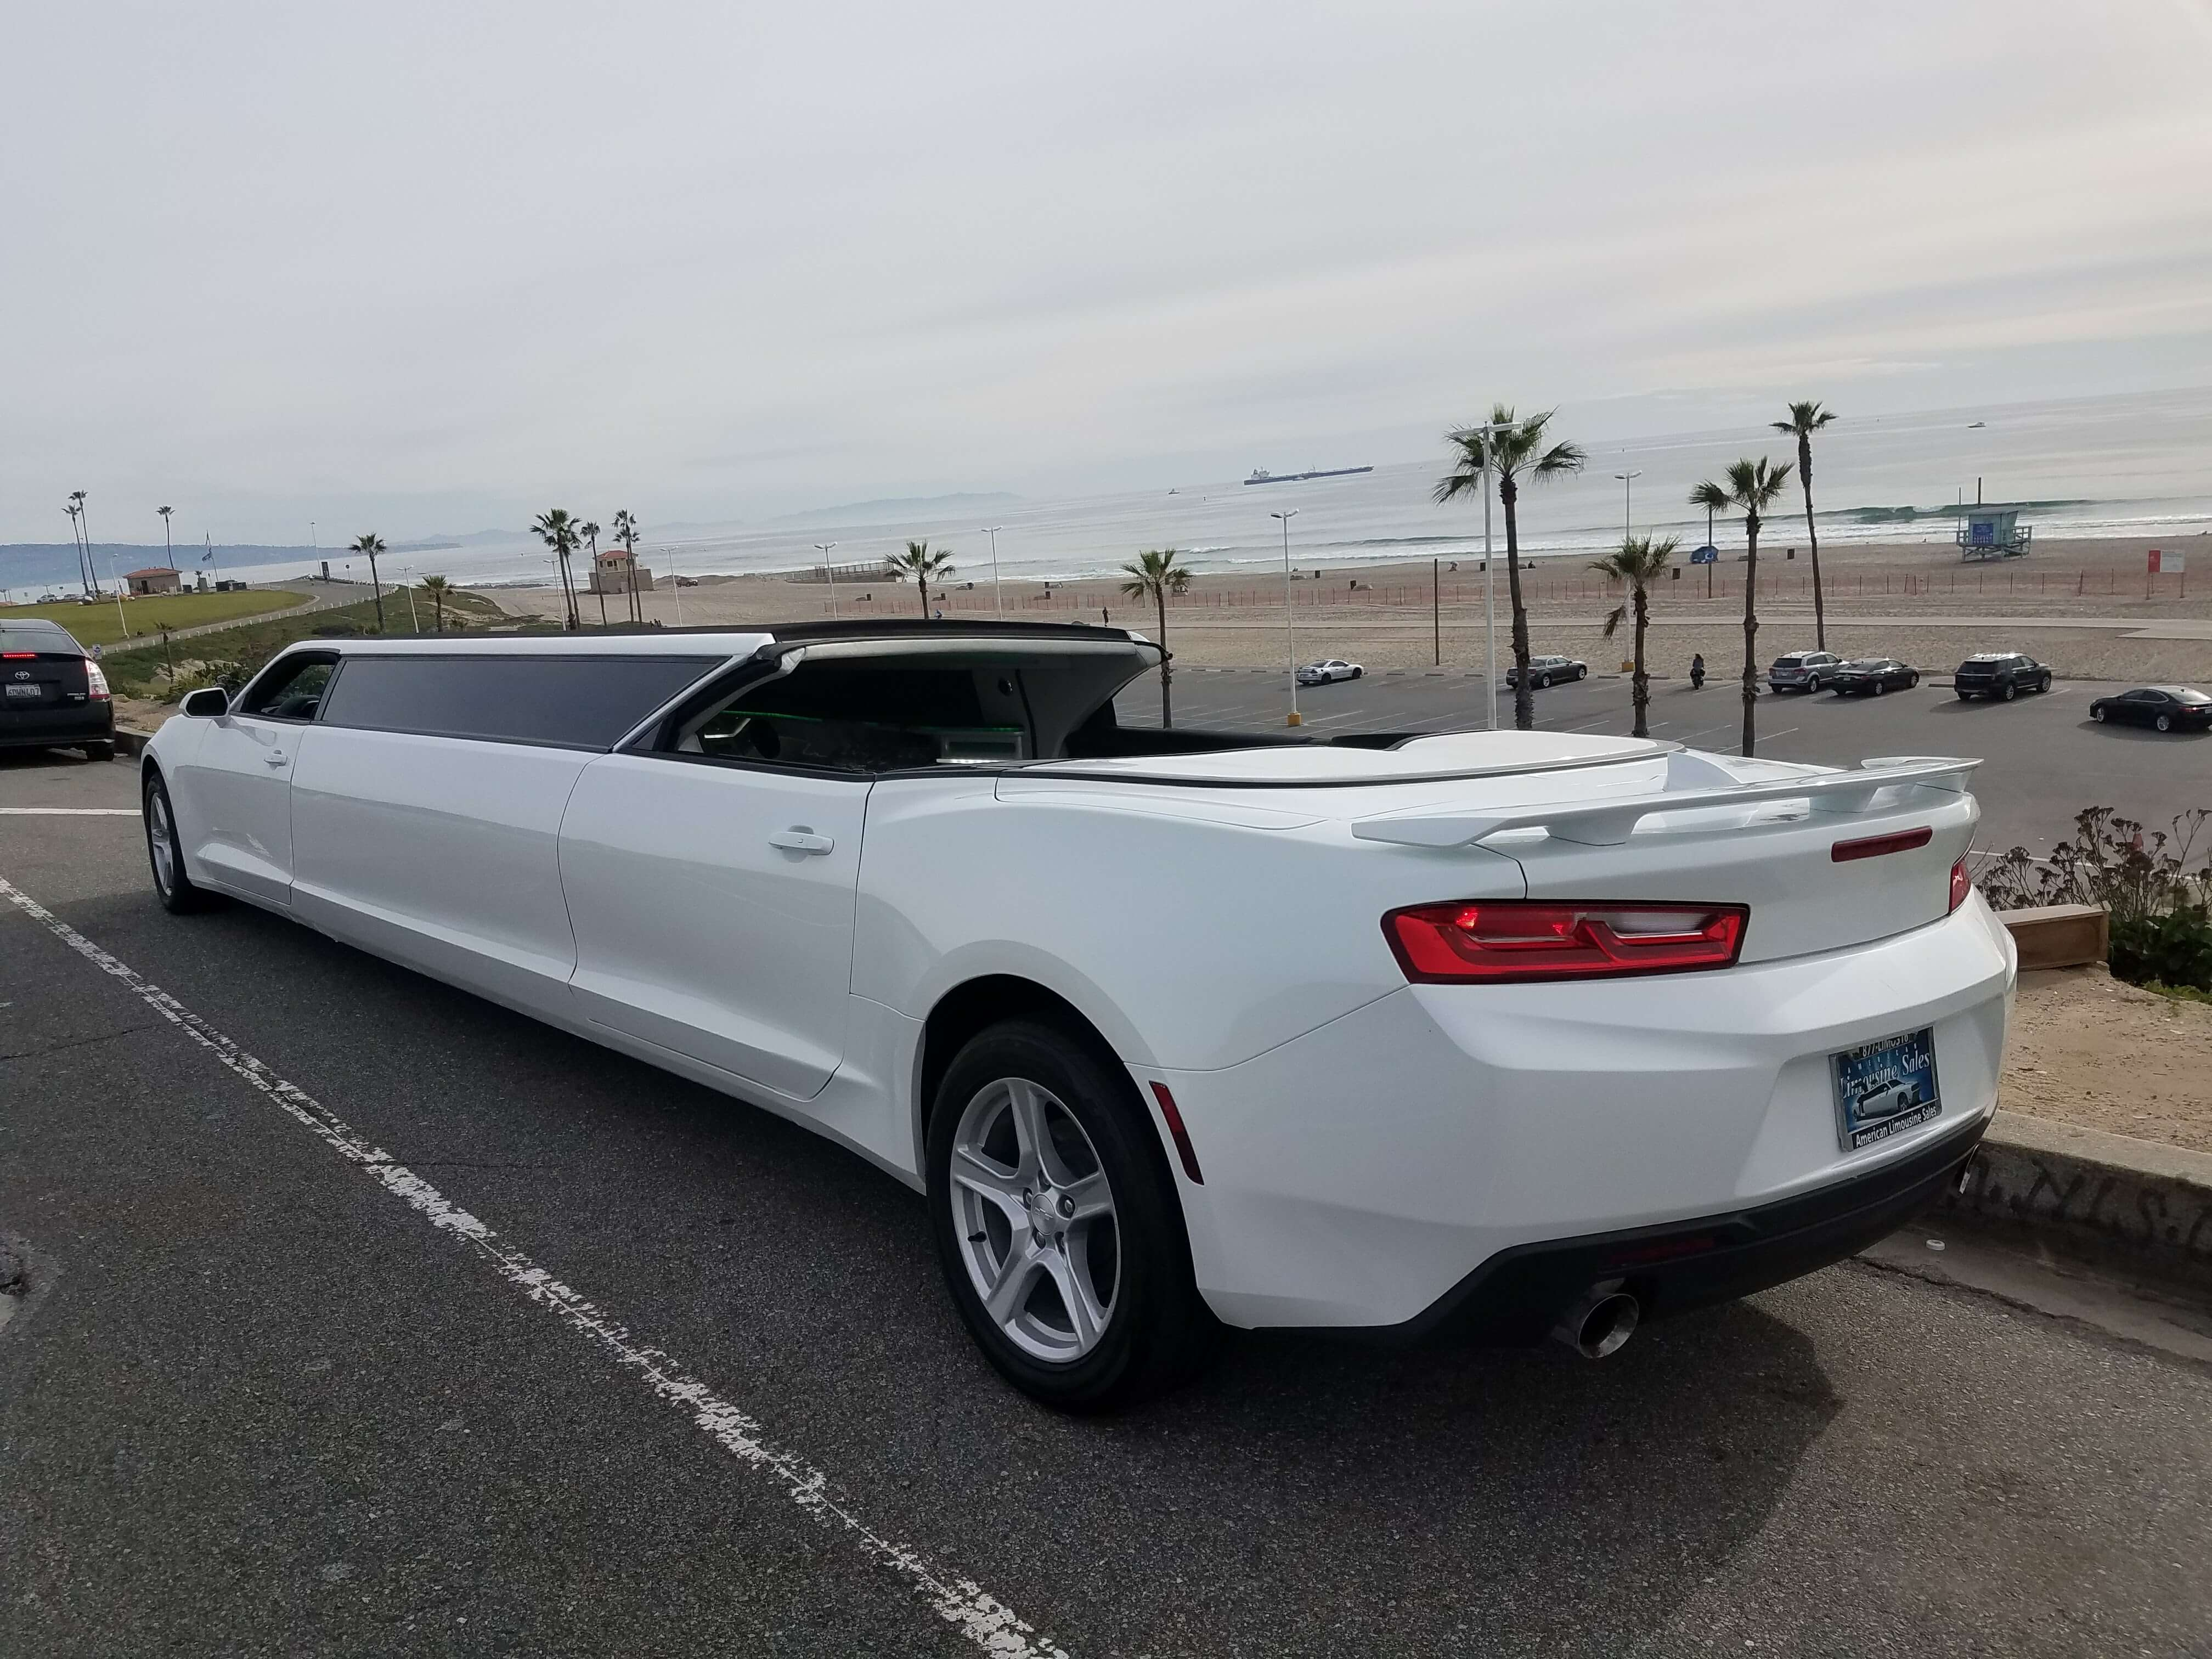 Limo For Sale >> Convertible Chevy Camaro 140-inch Limousine